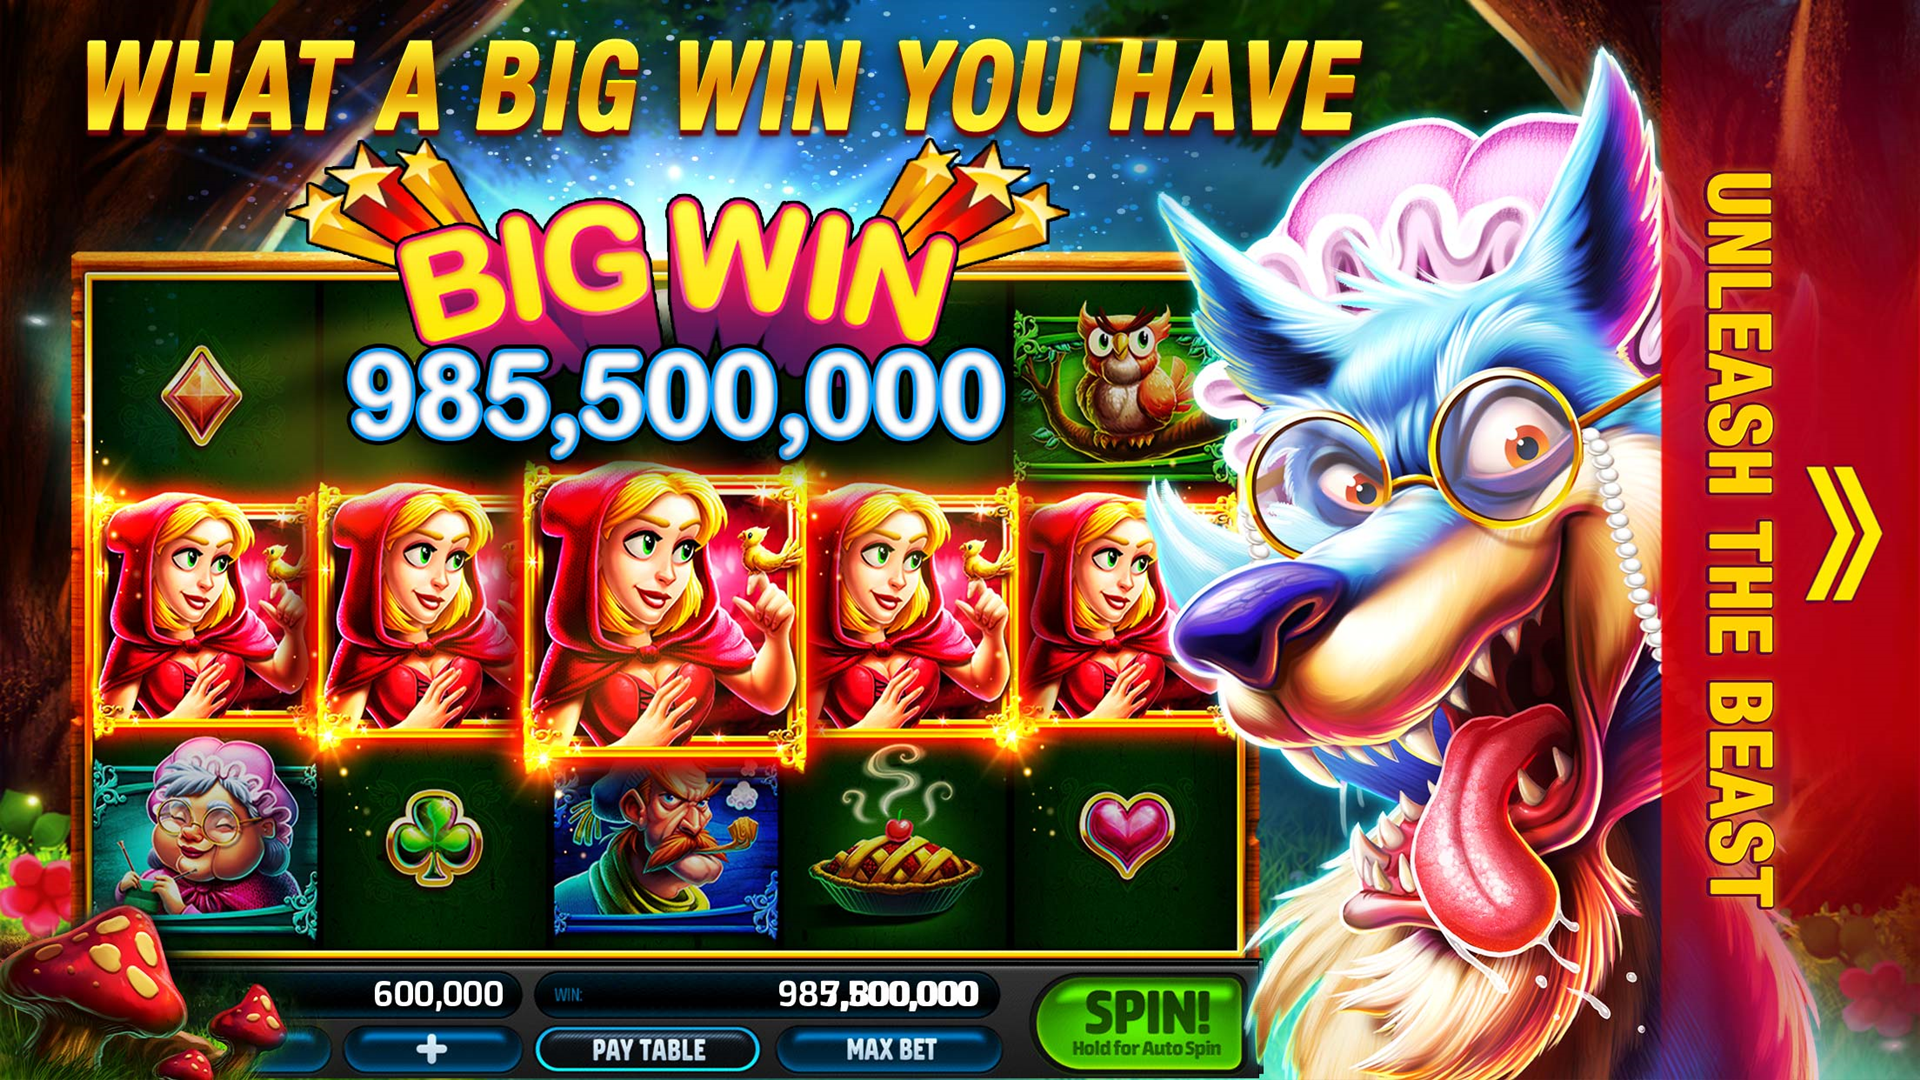 All Slots Casino > 1500€ Gratis Willkommenspaket